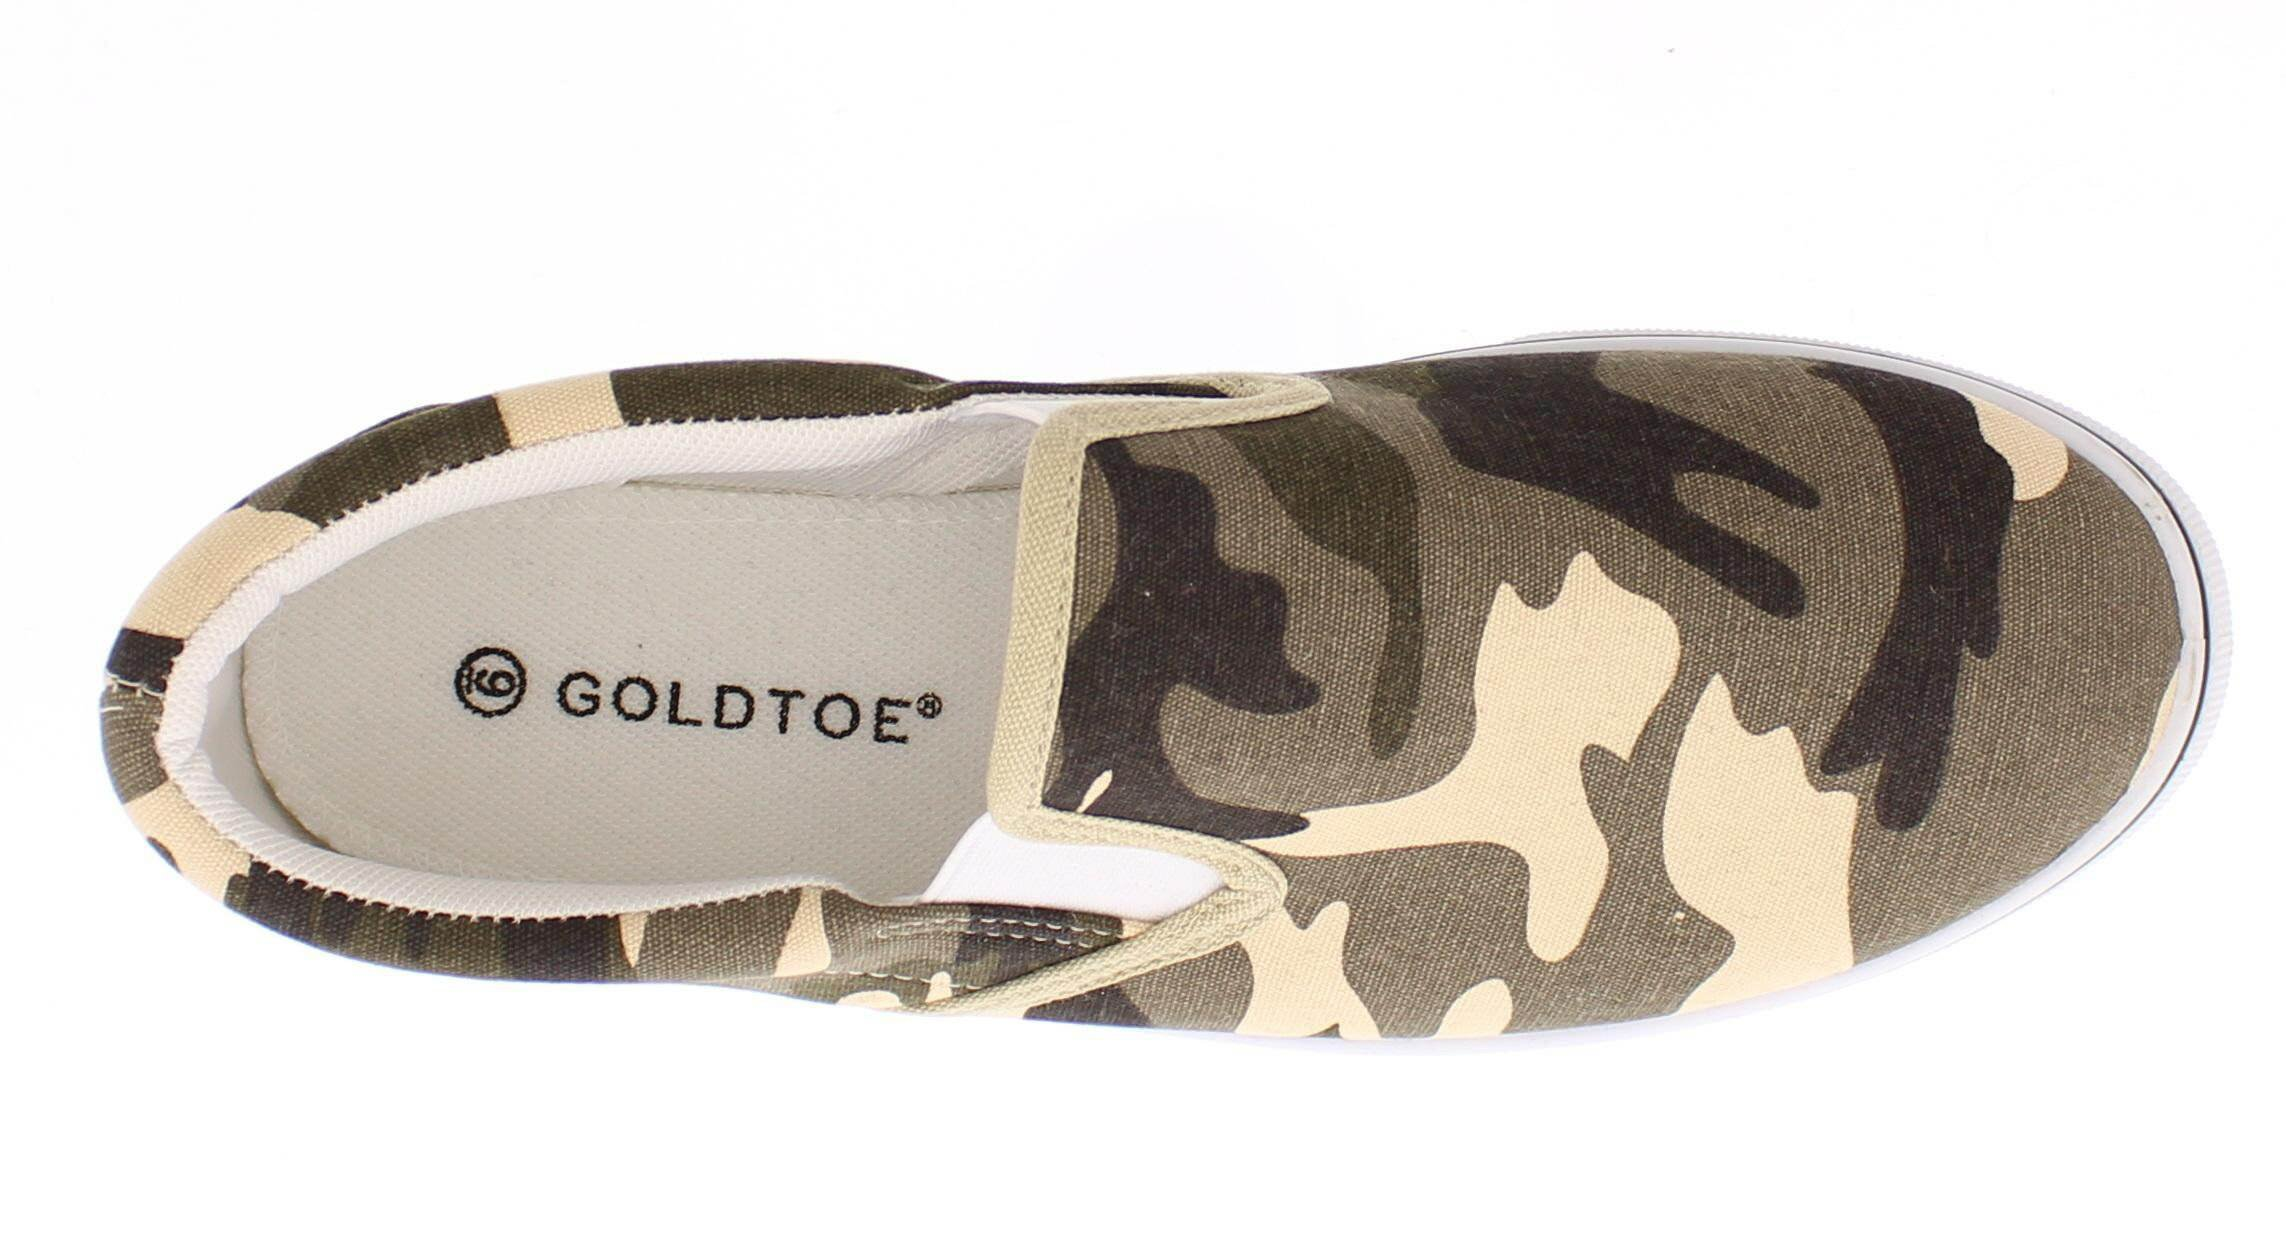 Gold Toe Doug Mens Slip On Shoes Casual,Memory Foam Sneakers for Men,Canvas Shoe,Men's Deck Shoes,Skate Shoes Camouflage 9.5W US by Gold Toe (Image #6)